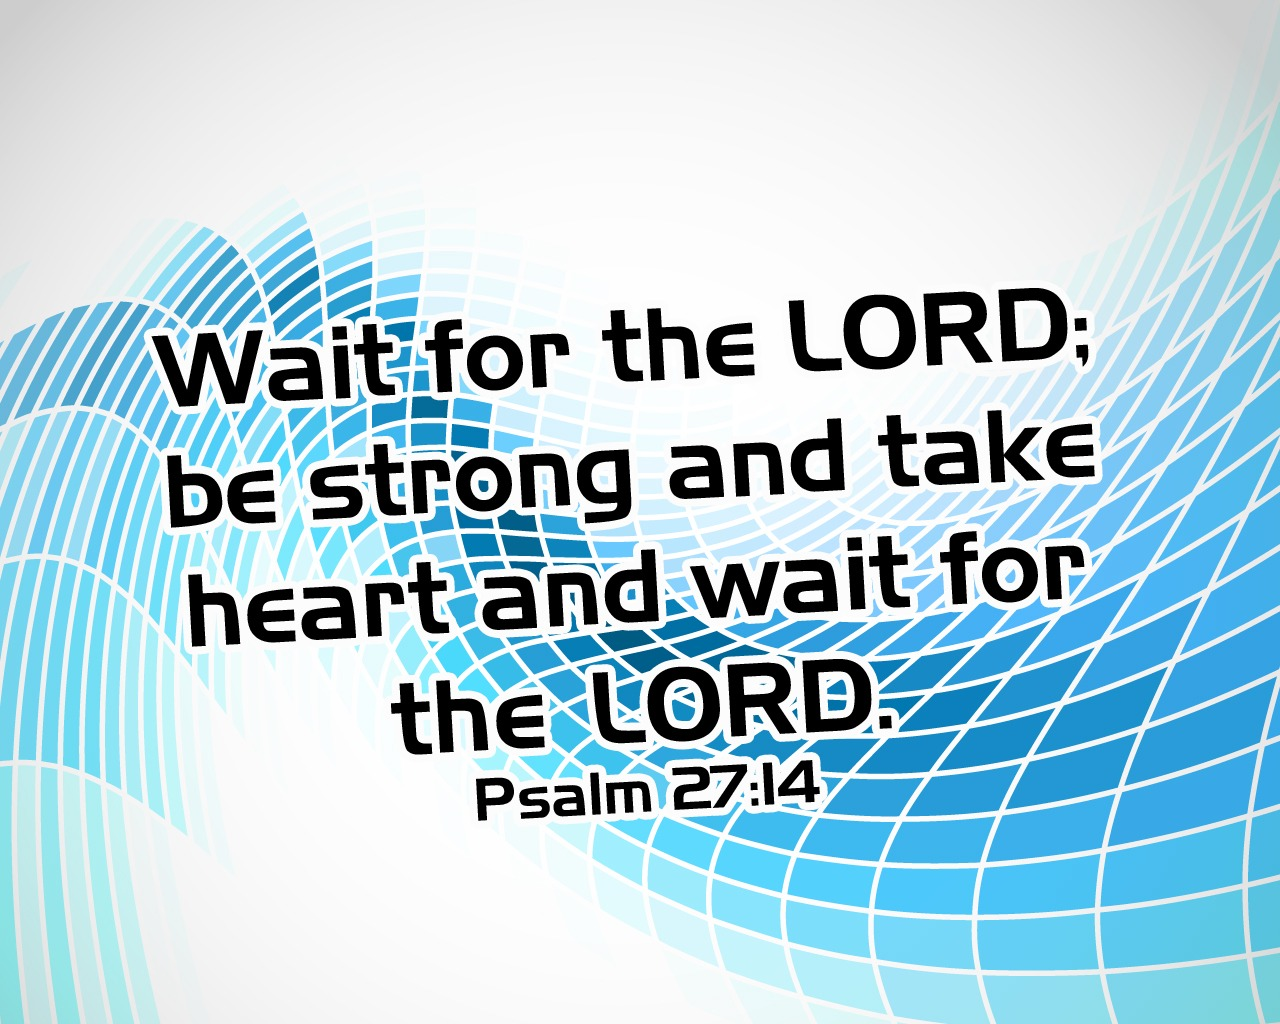 Learn how to wait on the lord